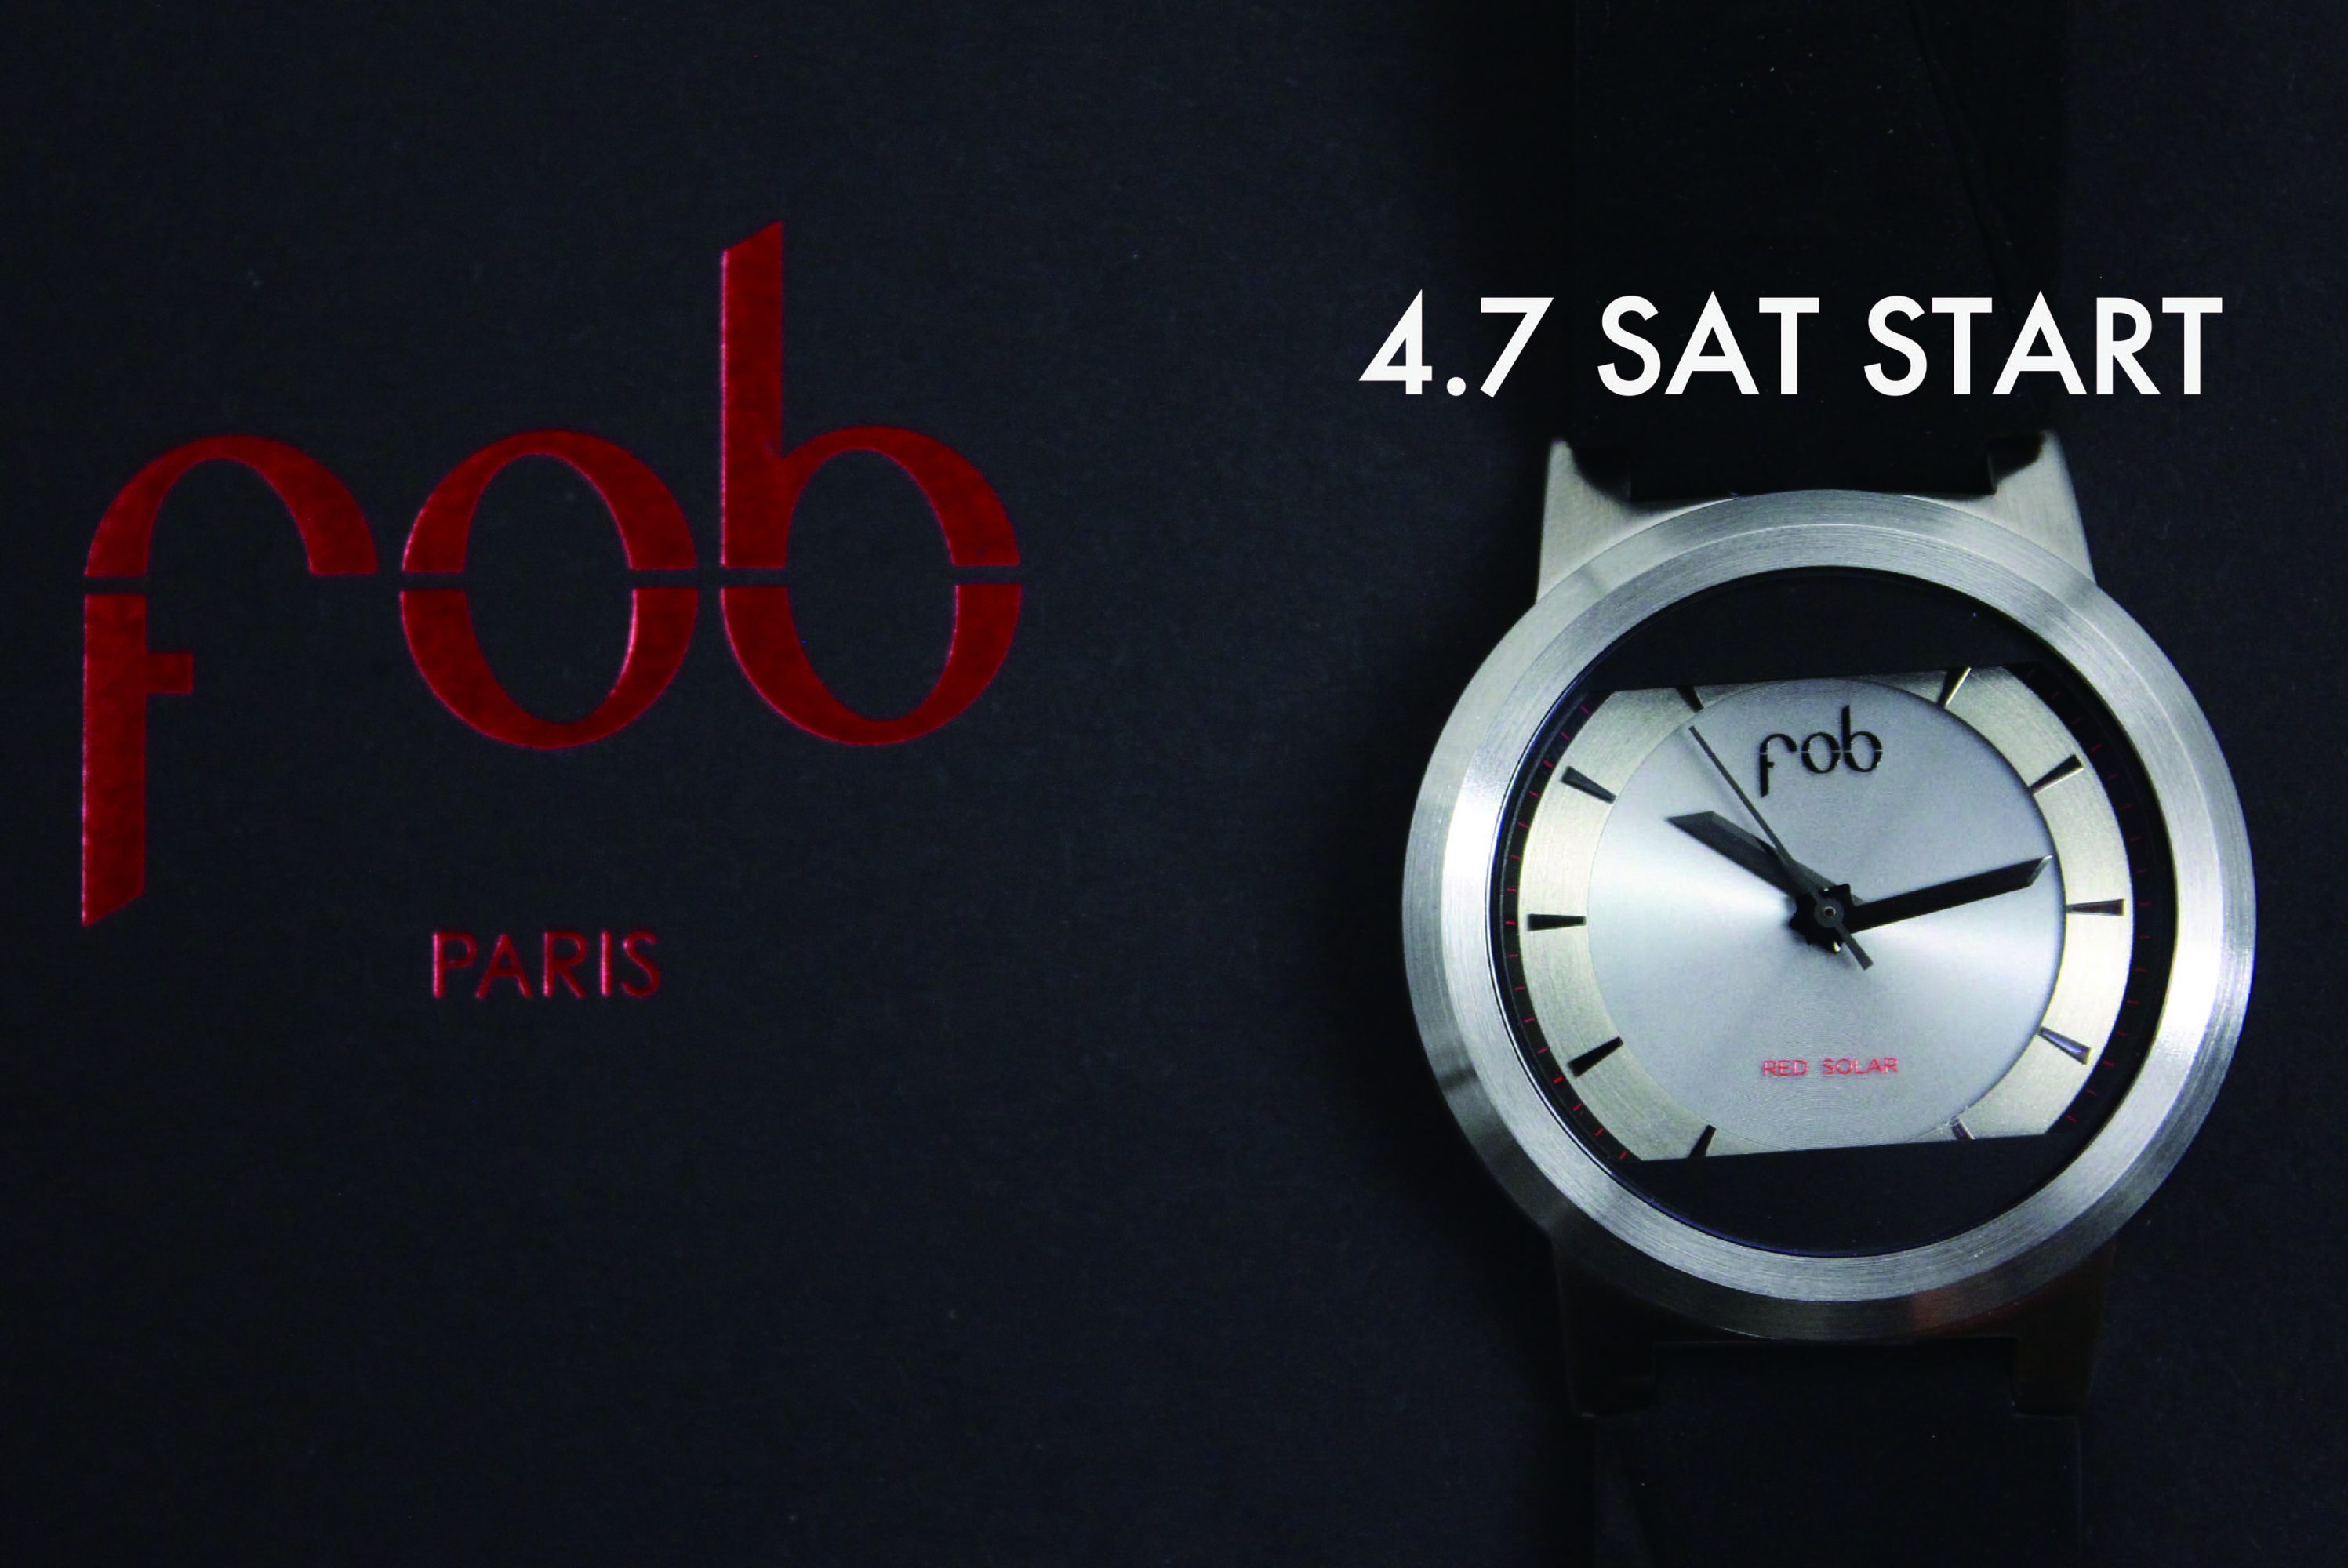 fob PARIS REDSOLOR COLLECTION 4.7(sat) START!!